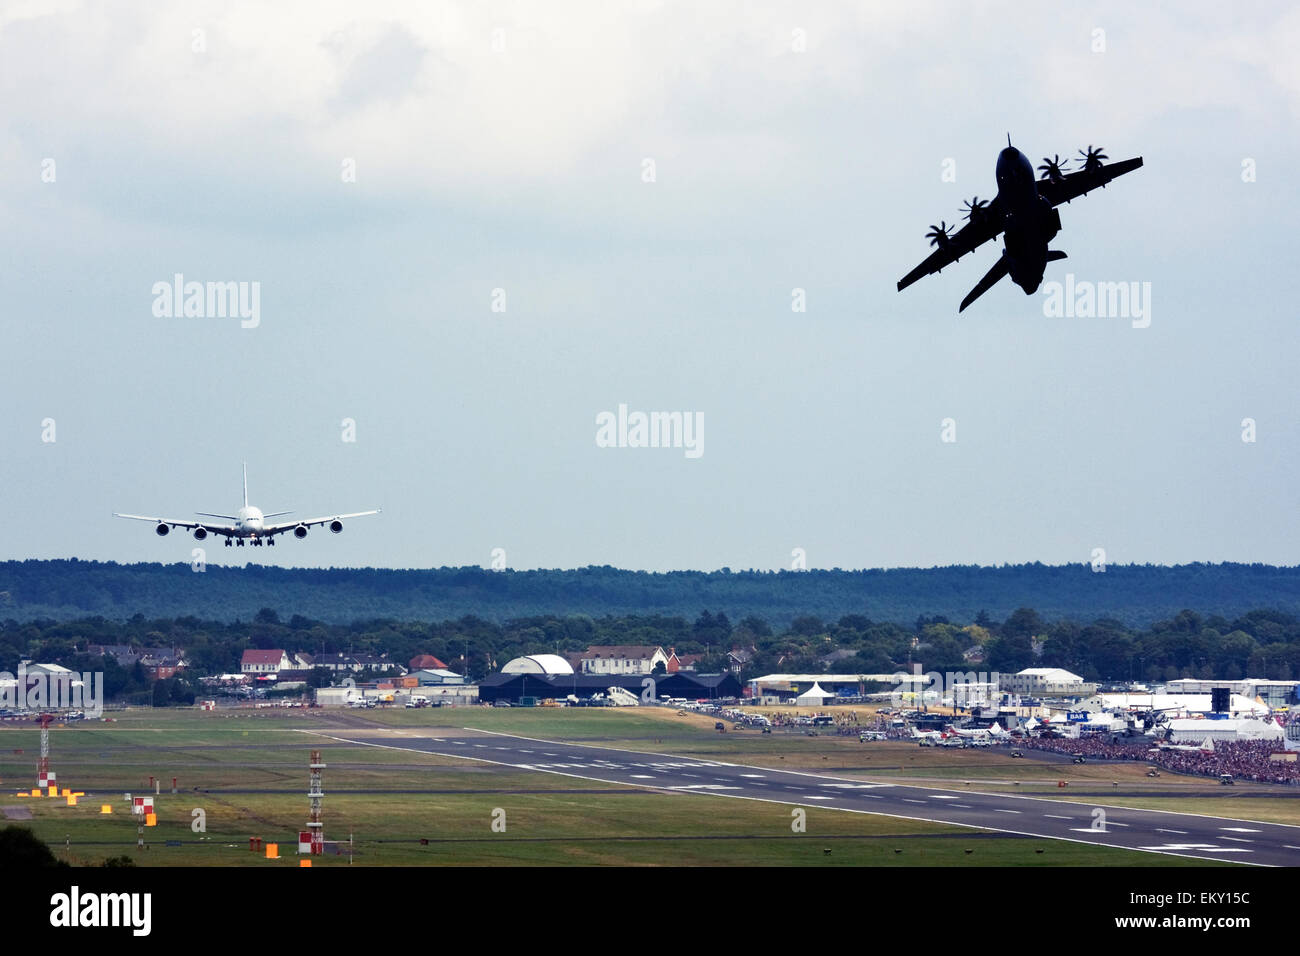 Airbus A380 landing while Airbus A400M Atlas takes off for a display at Farnborough International Airshow 2015 - Stock Image